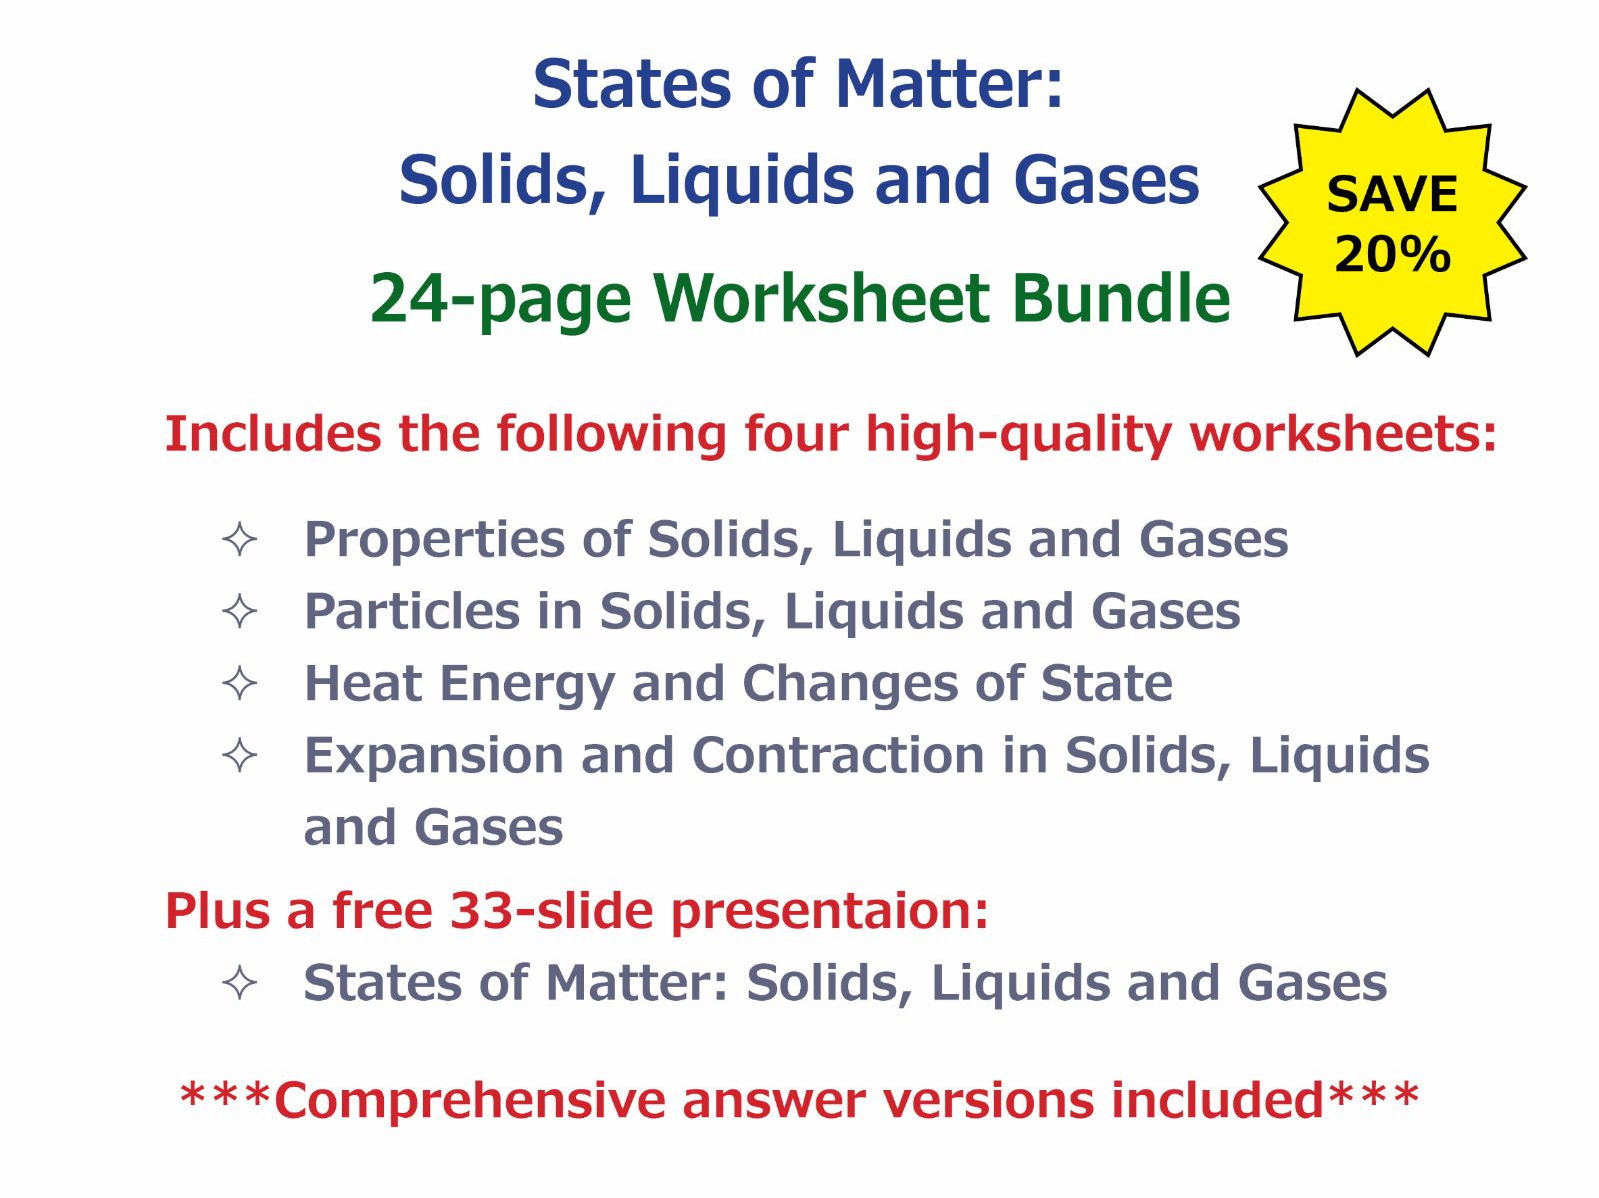 States Of Matter Solids Liquids And Gases Worksheet